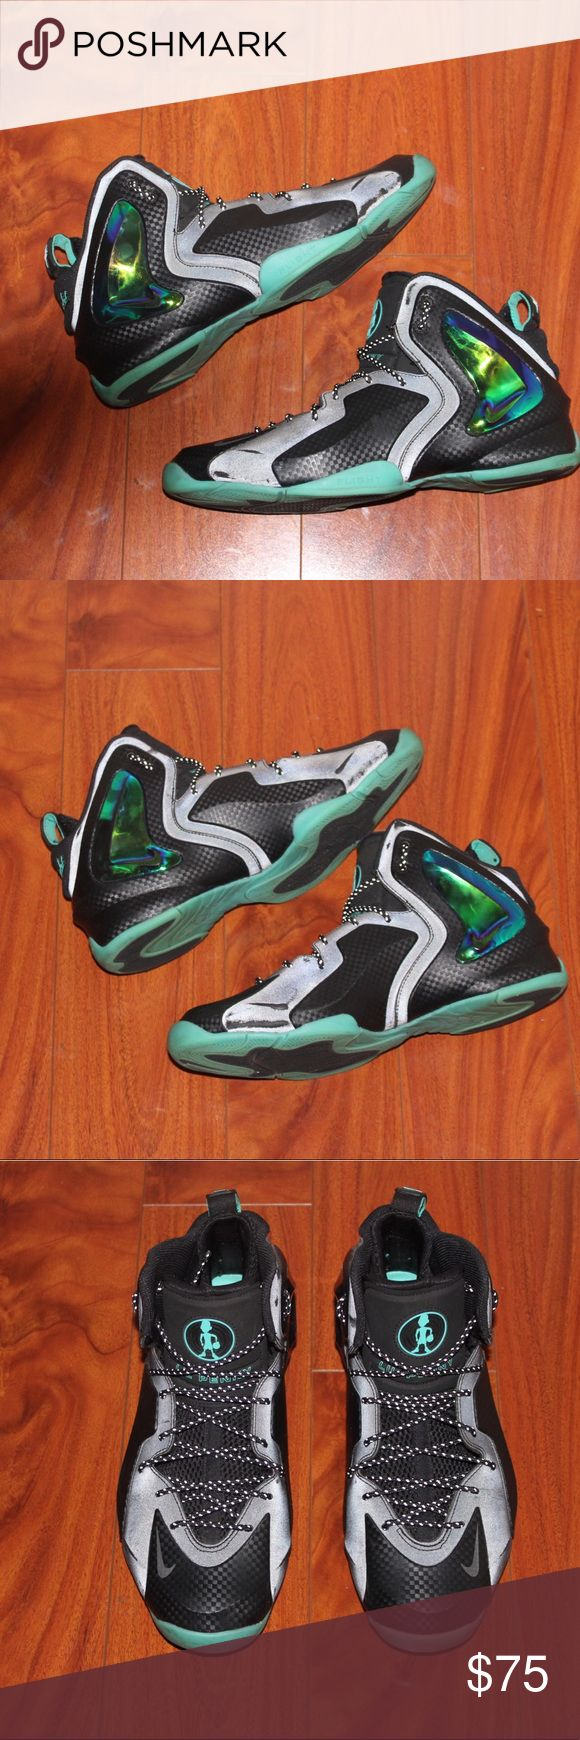 """Nike """"Lil Penny Posite"""" (penny hardaway) Shoes have been worn quite a few times/ very comfortable/ NO BOX Nike Shoes Sneakers"""